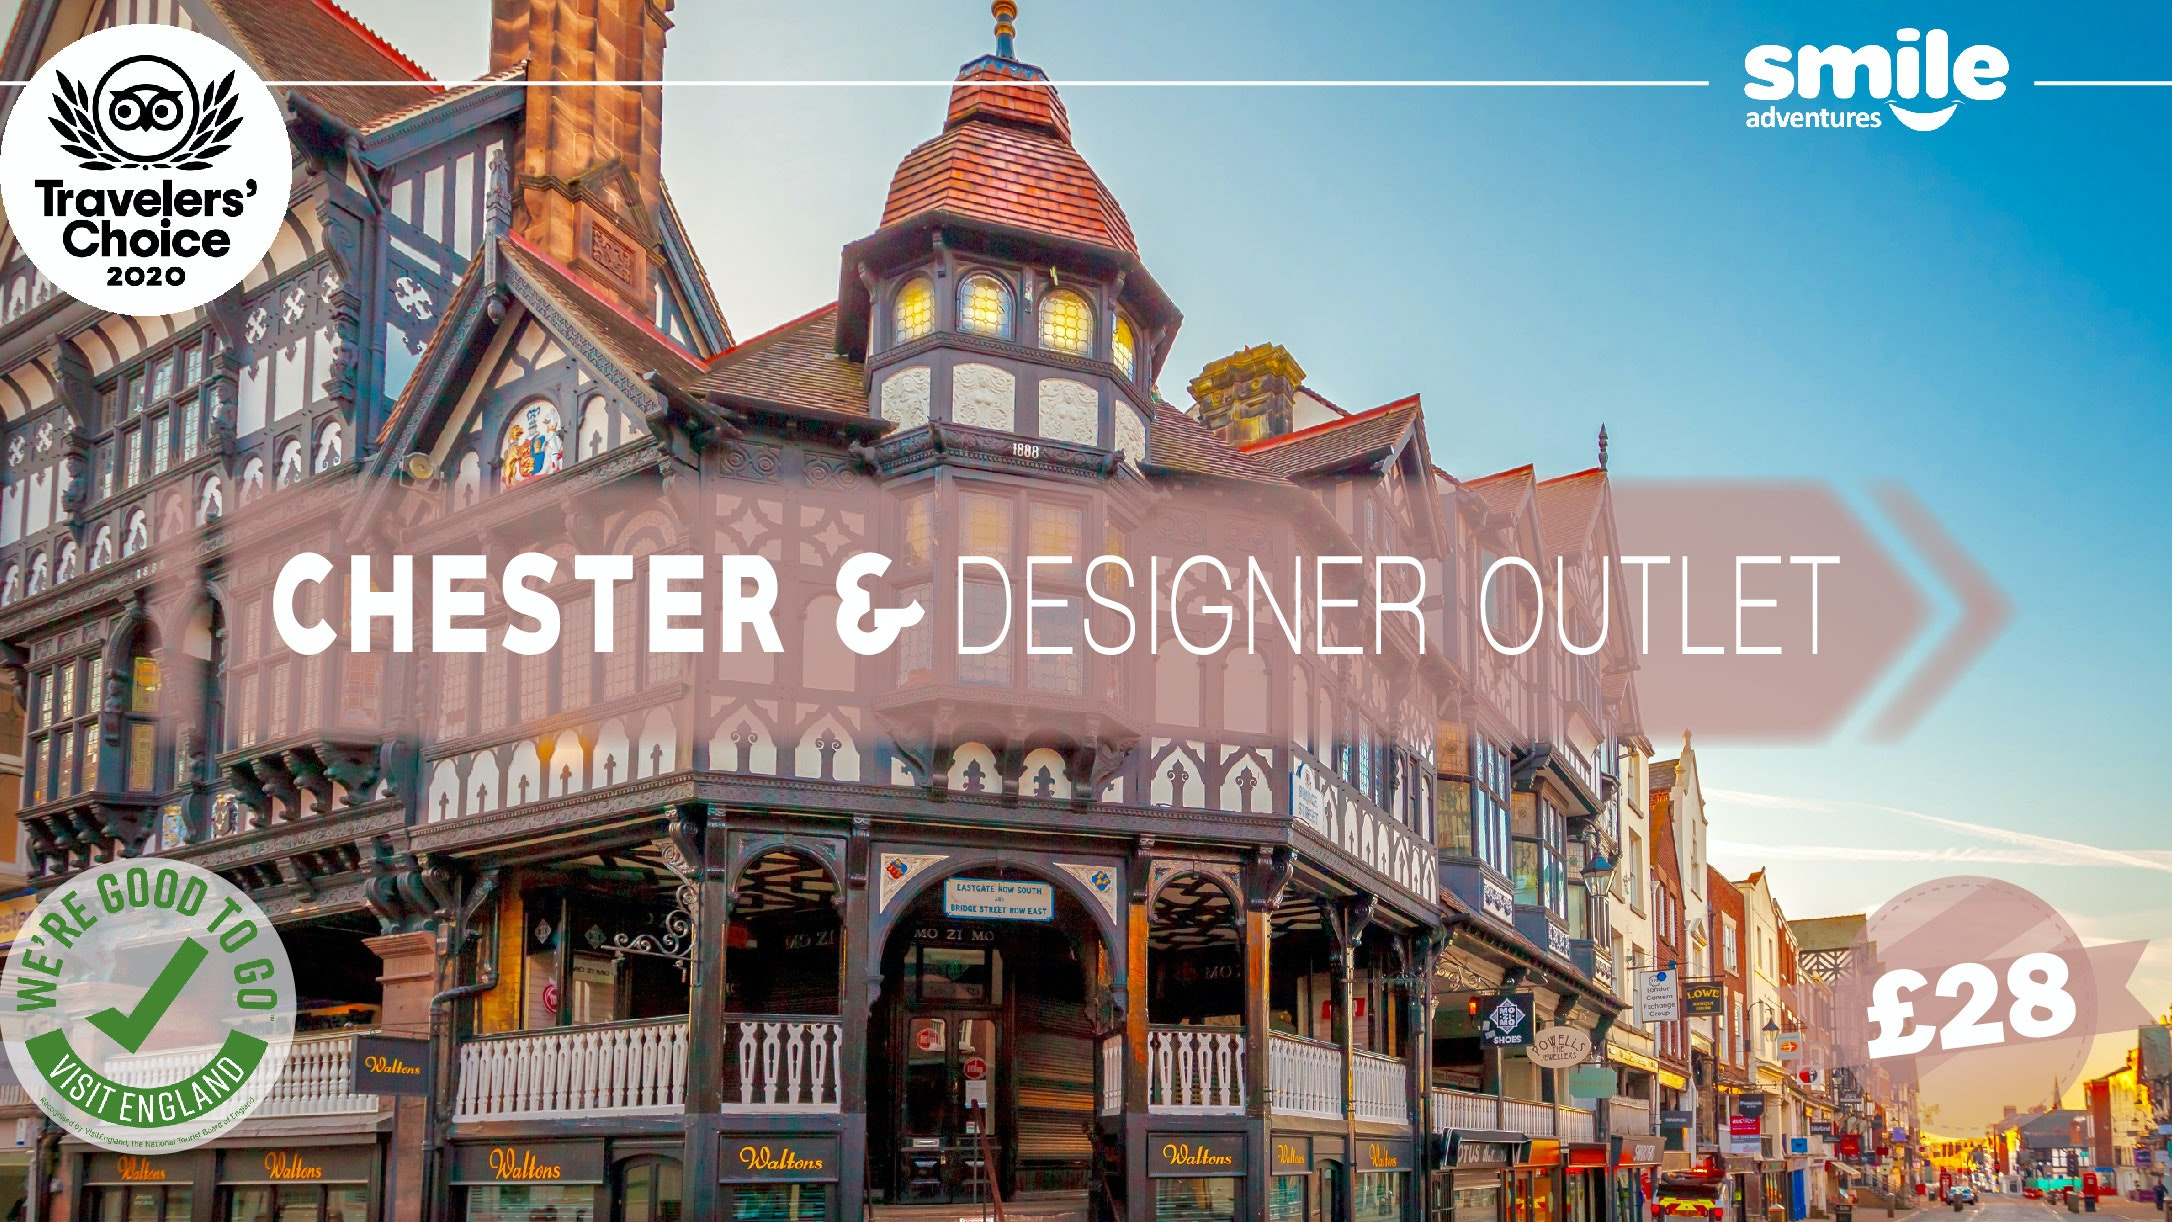 Chester & Designer Outlet – From Manchester